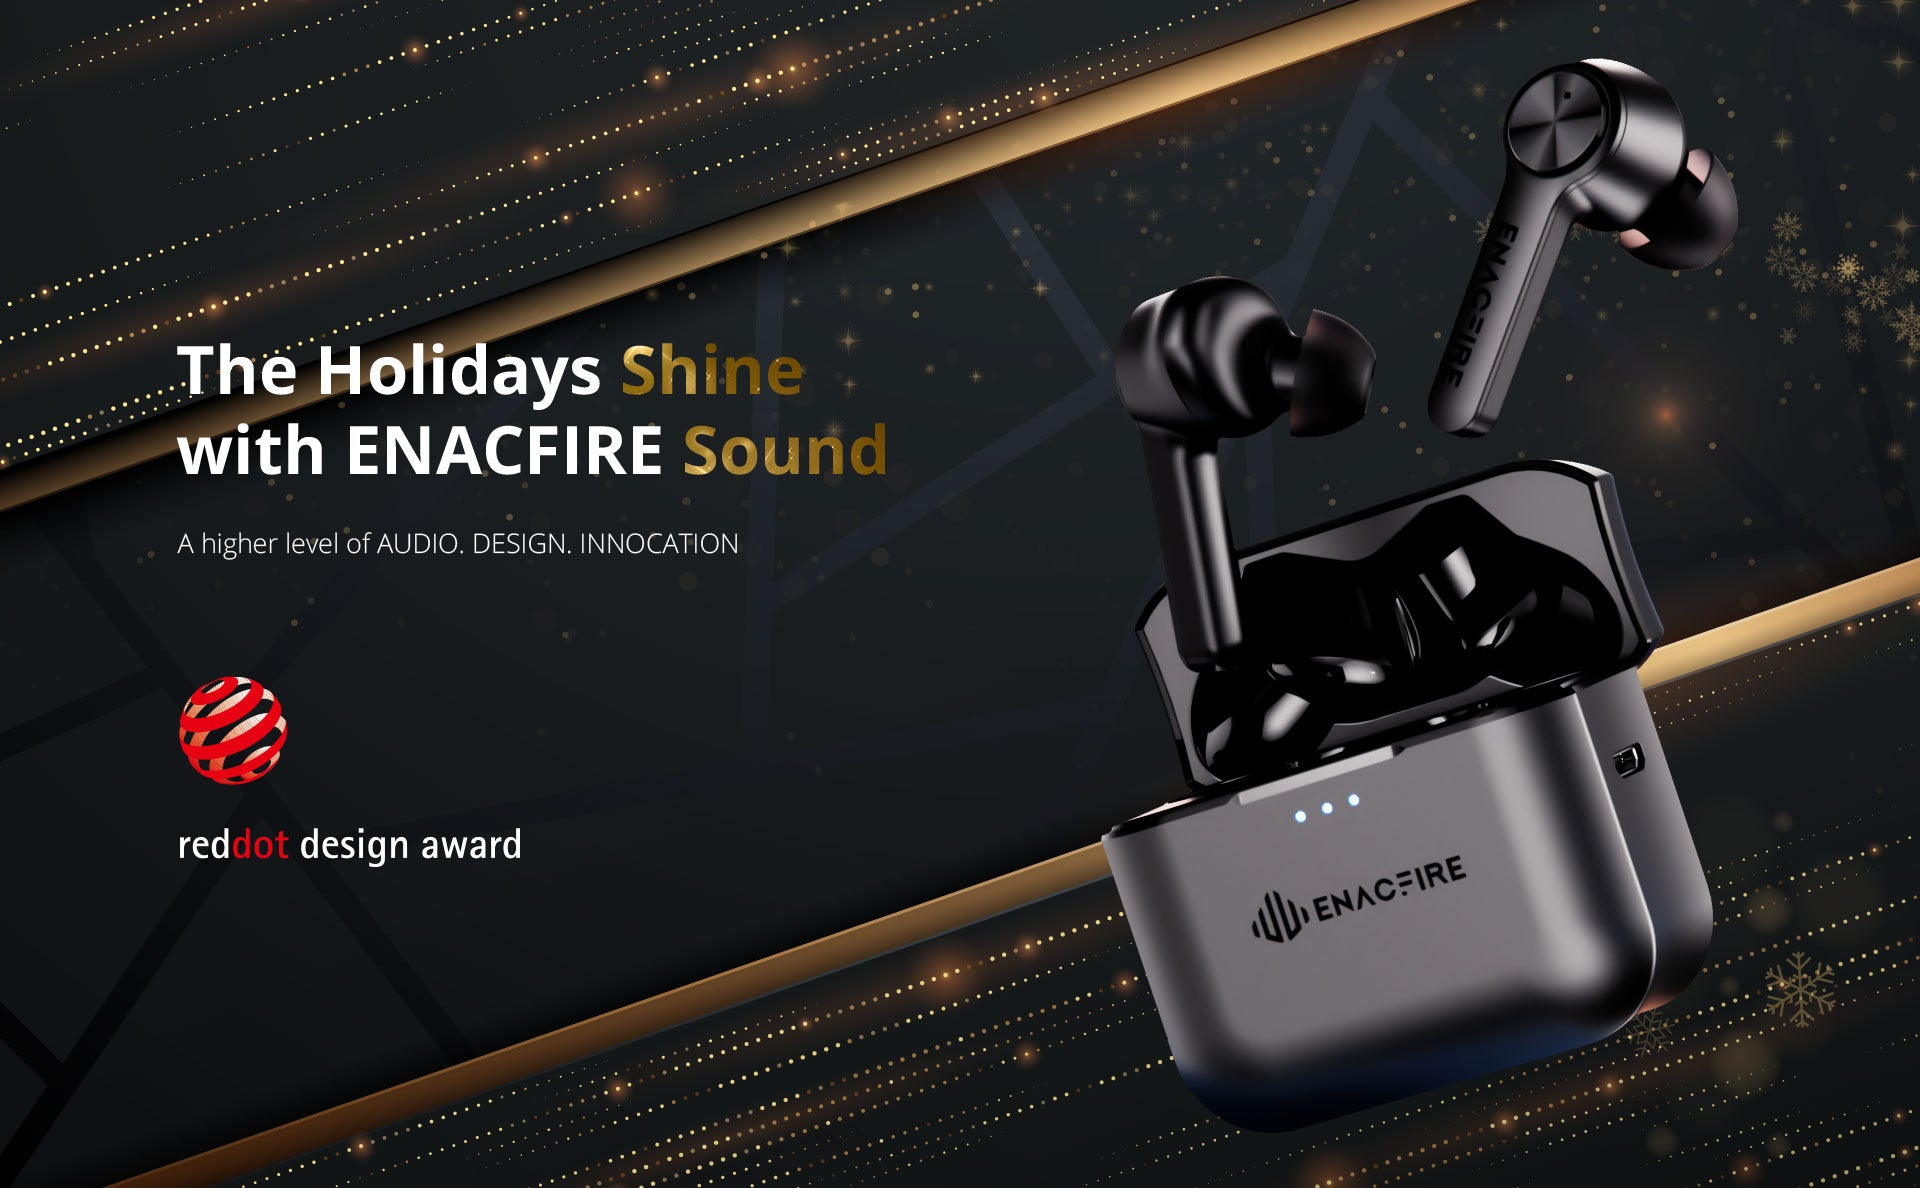 ENACIFRE F2 Wireless Earbuds - a higher level of audio